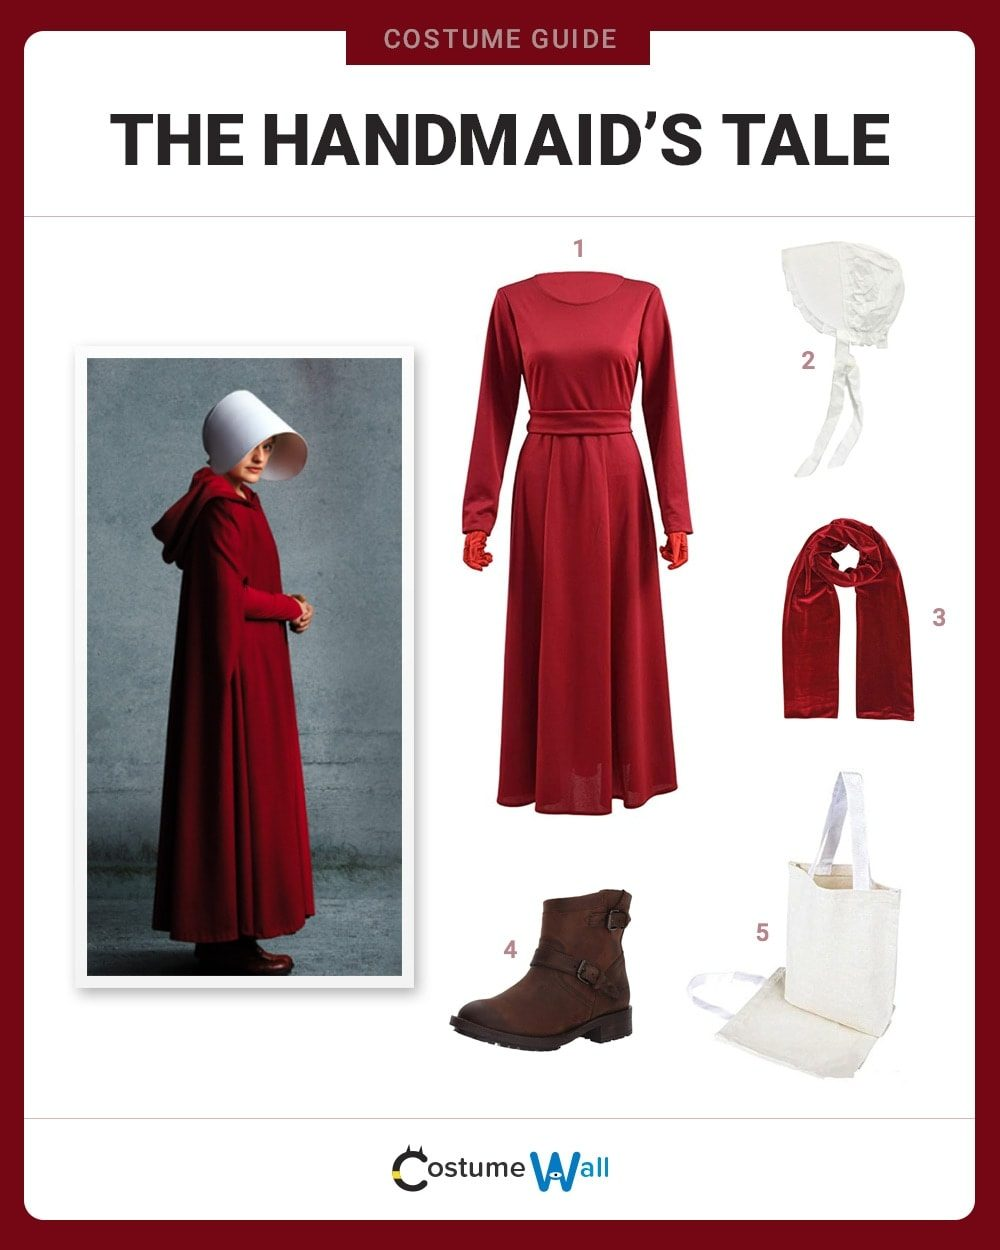 The Handmaid's Tale Costume Guide